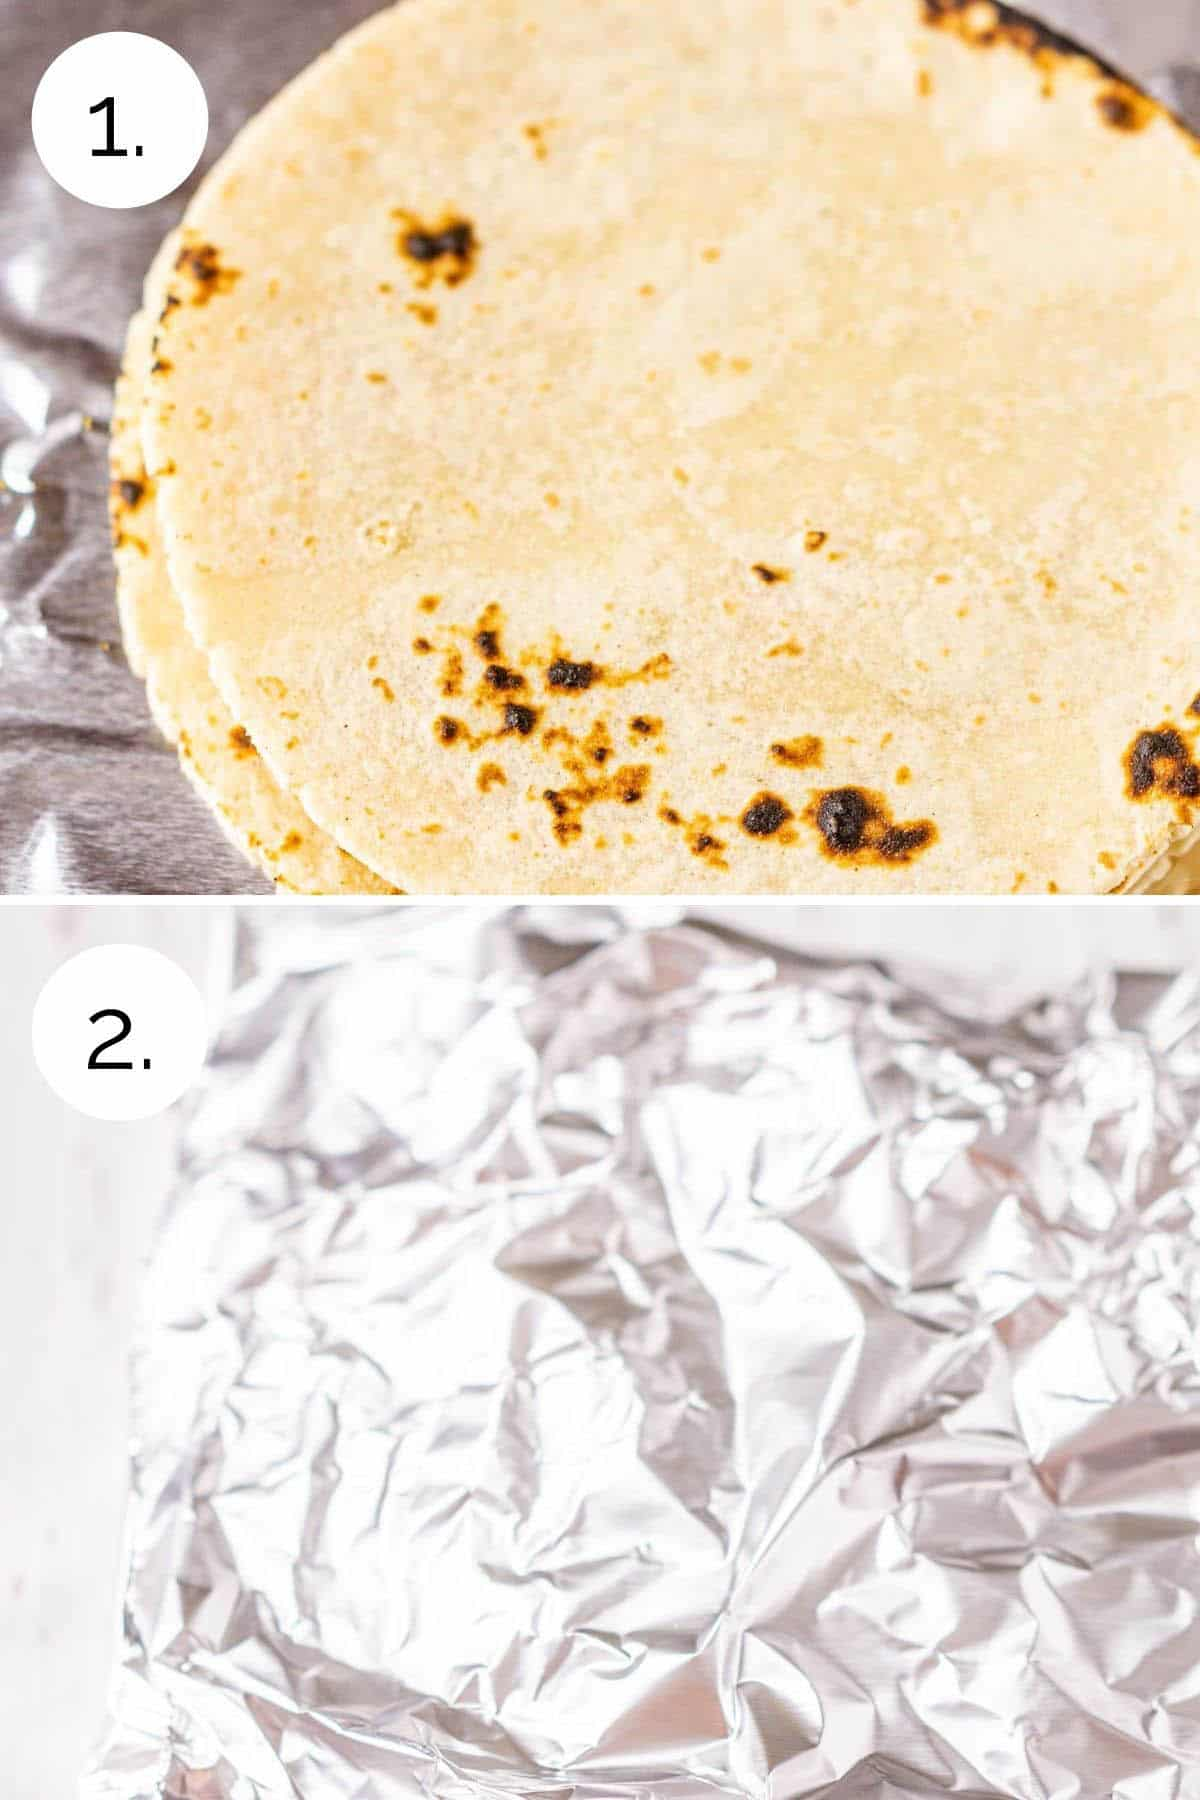 Wrapping the tortillas in foil before warming in the oven.